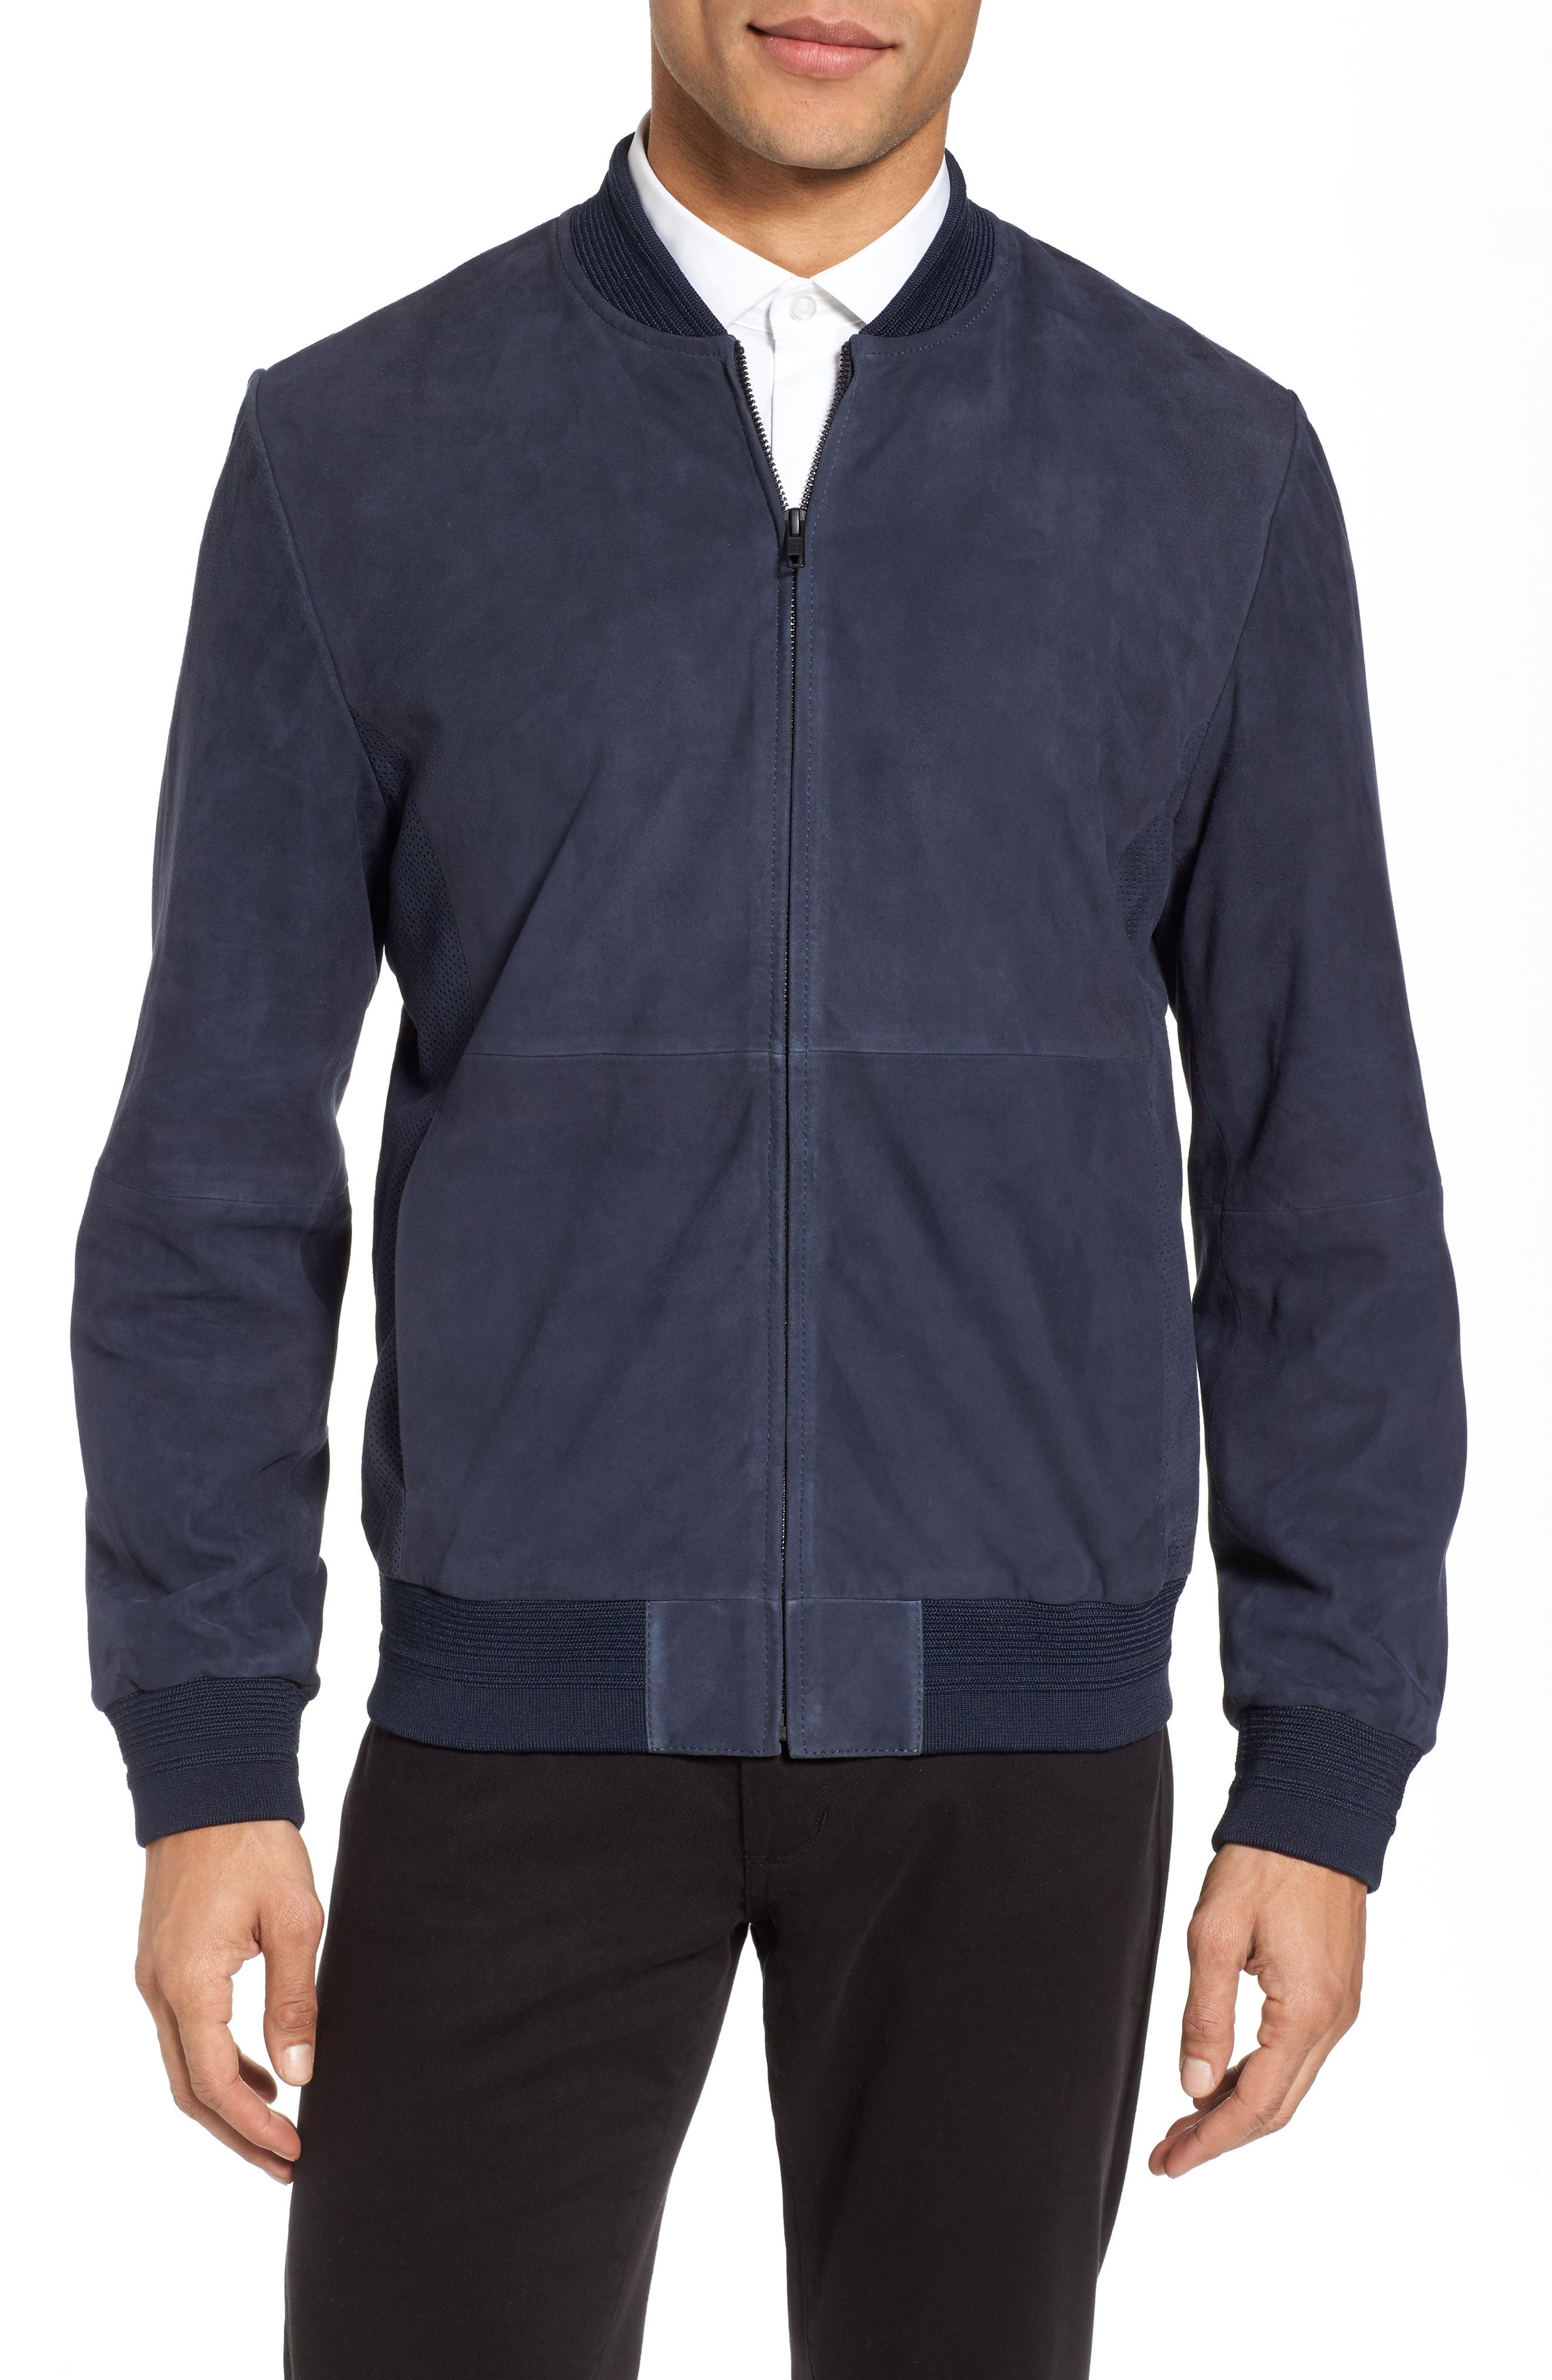 Suede Bomber Jacket,                             Main thumbnail 1, color,                             Navy Blue